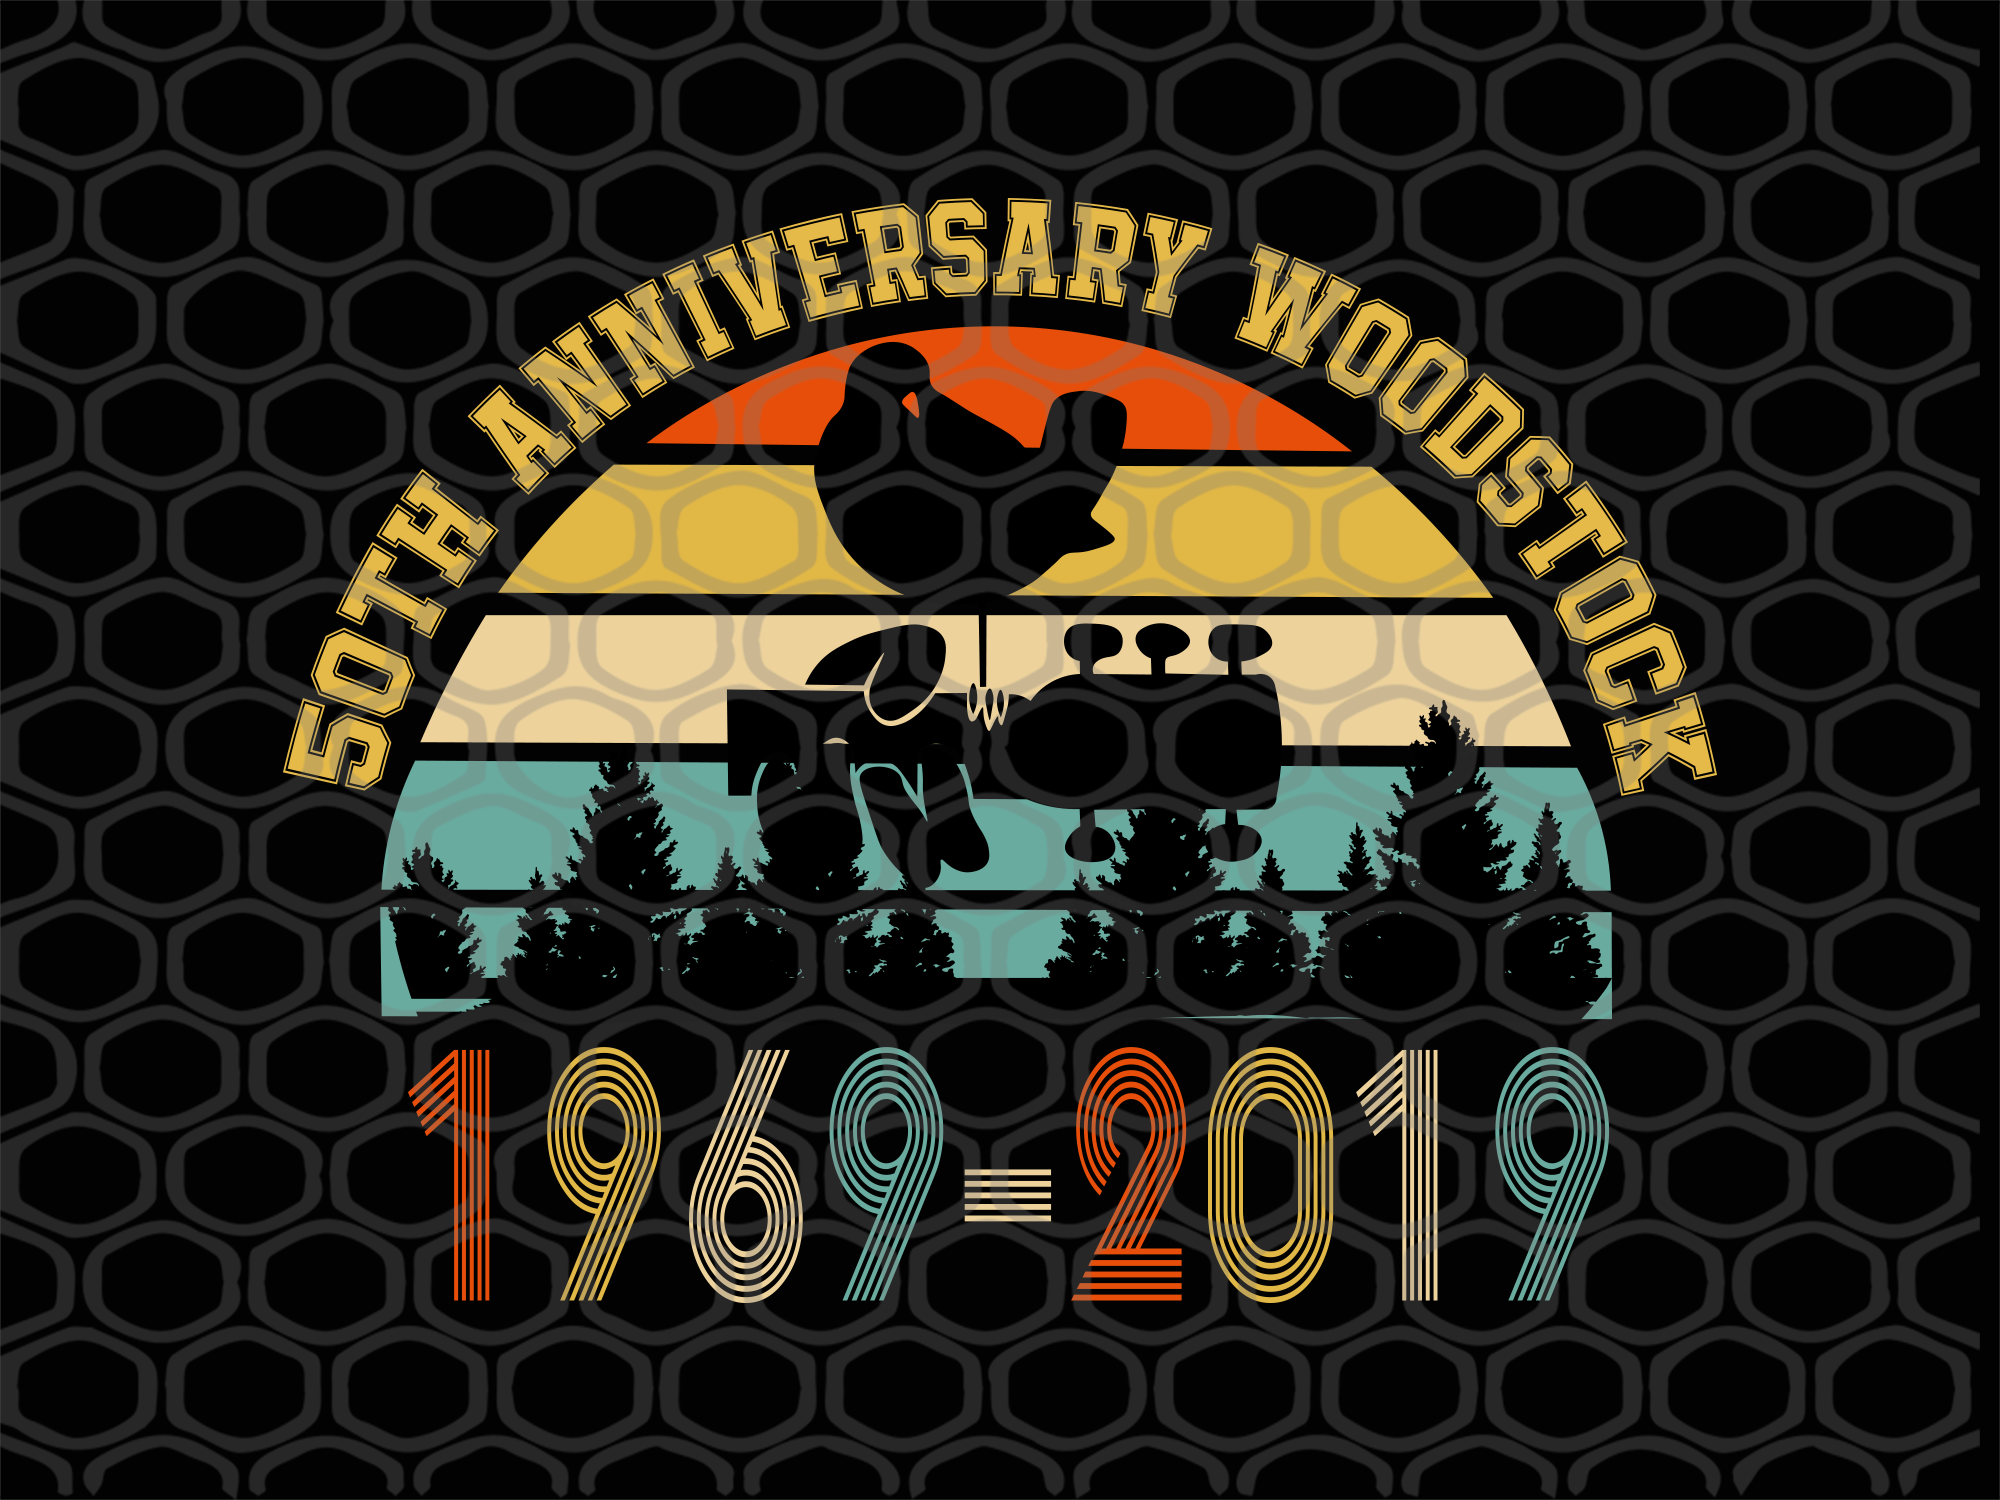 50th anniversary woodstock, woodstock, retro vintage, vintage woodstock, music svg, peace svg, love svg, woodstock 1969, hippie svg,trending svg, Files For Silhouette, Files For Cricut, SVG, DXF, EPS, PNG, Instant Download